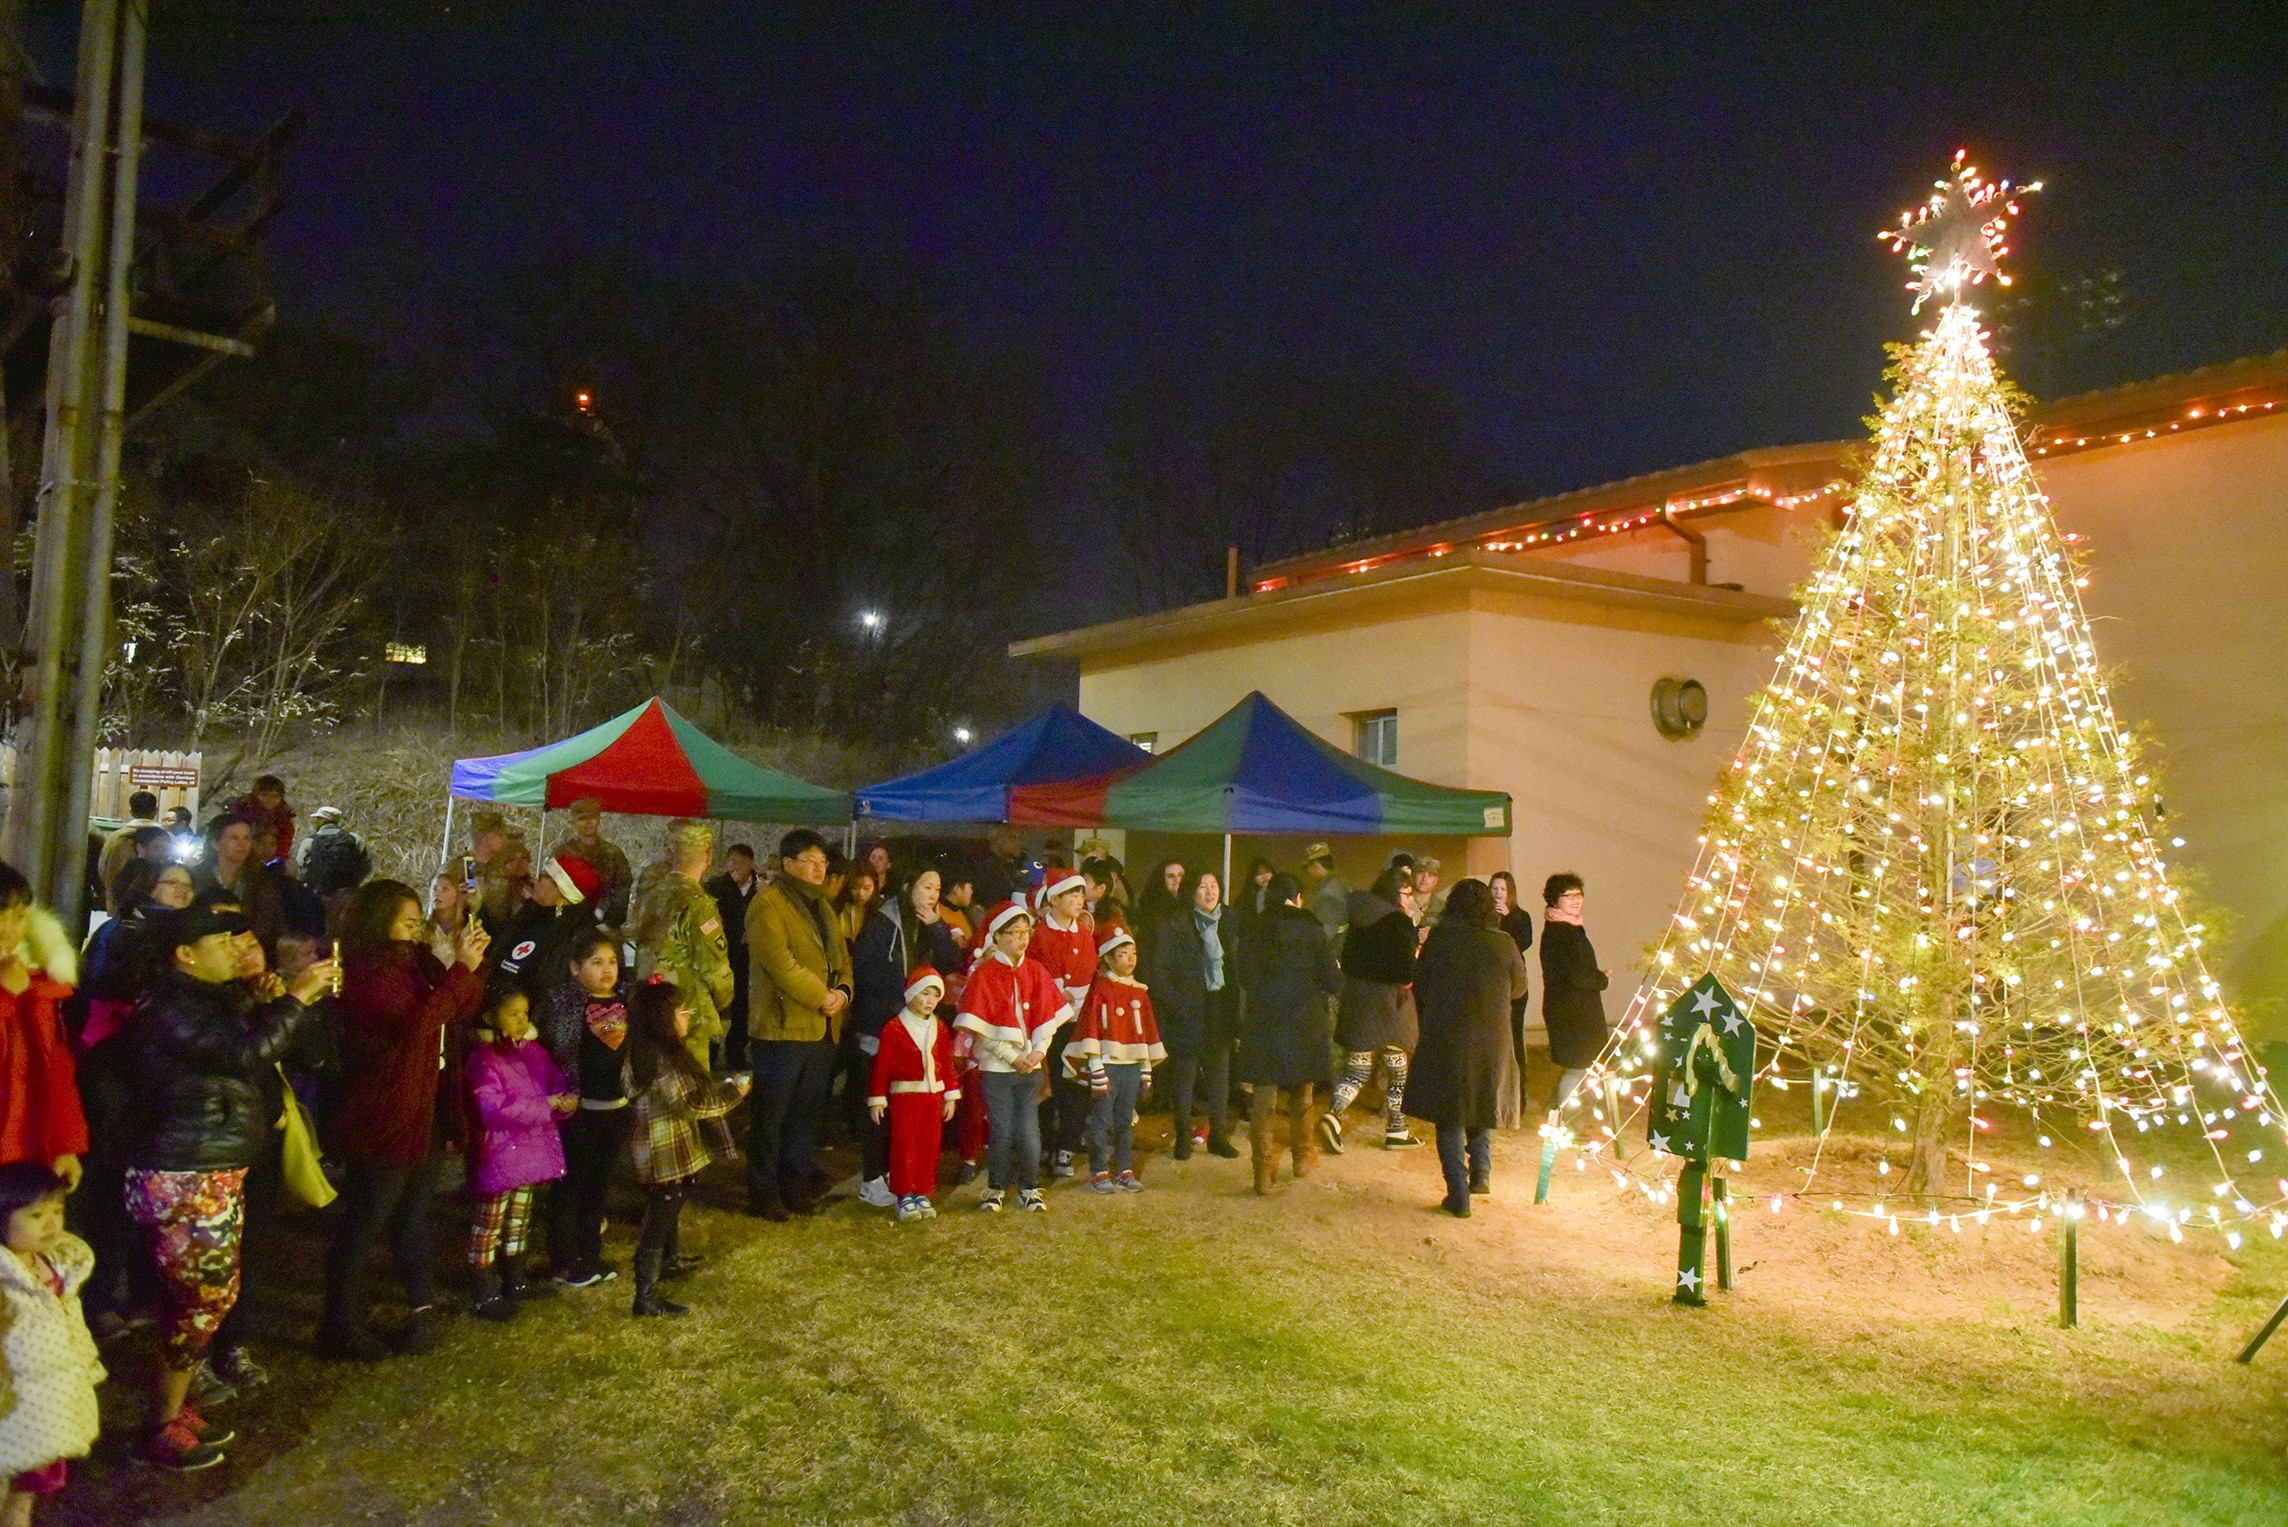 Christmas Tree Lighting.Christmas Tree Lighting Ceremony Helps Spread Holiday Cheer